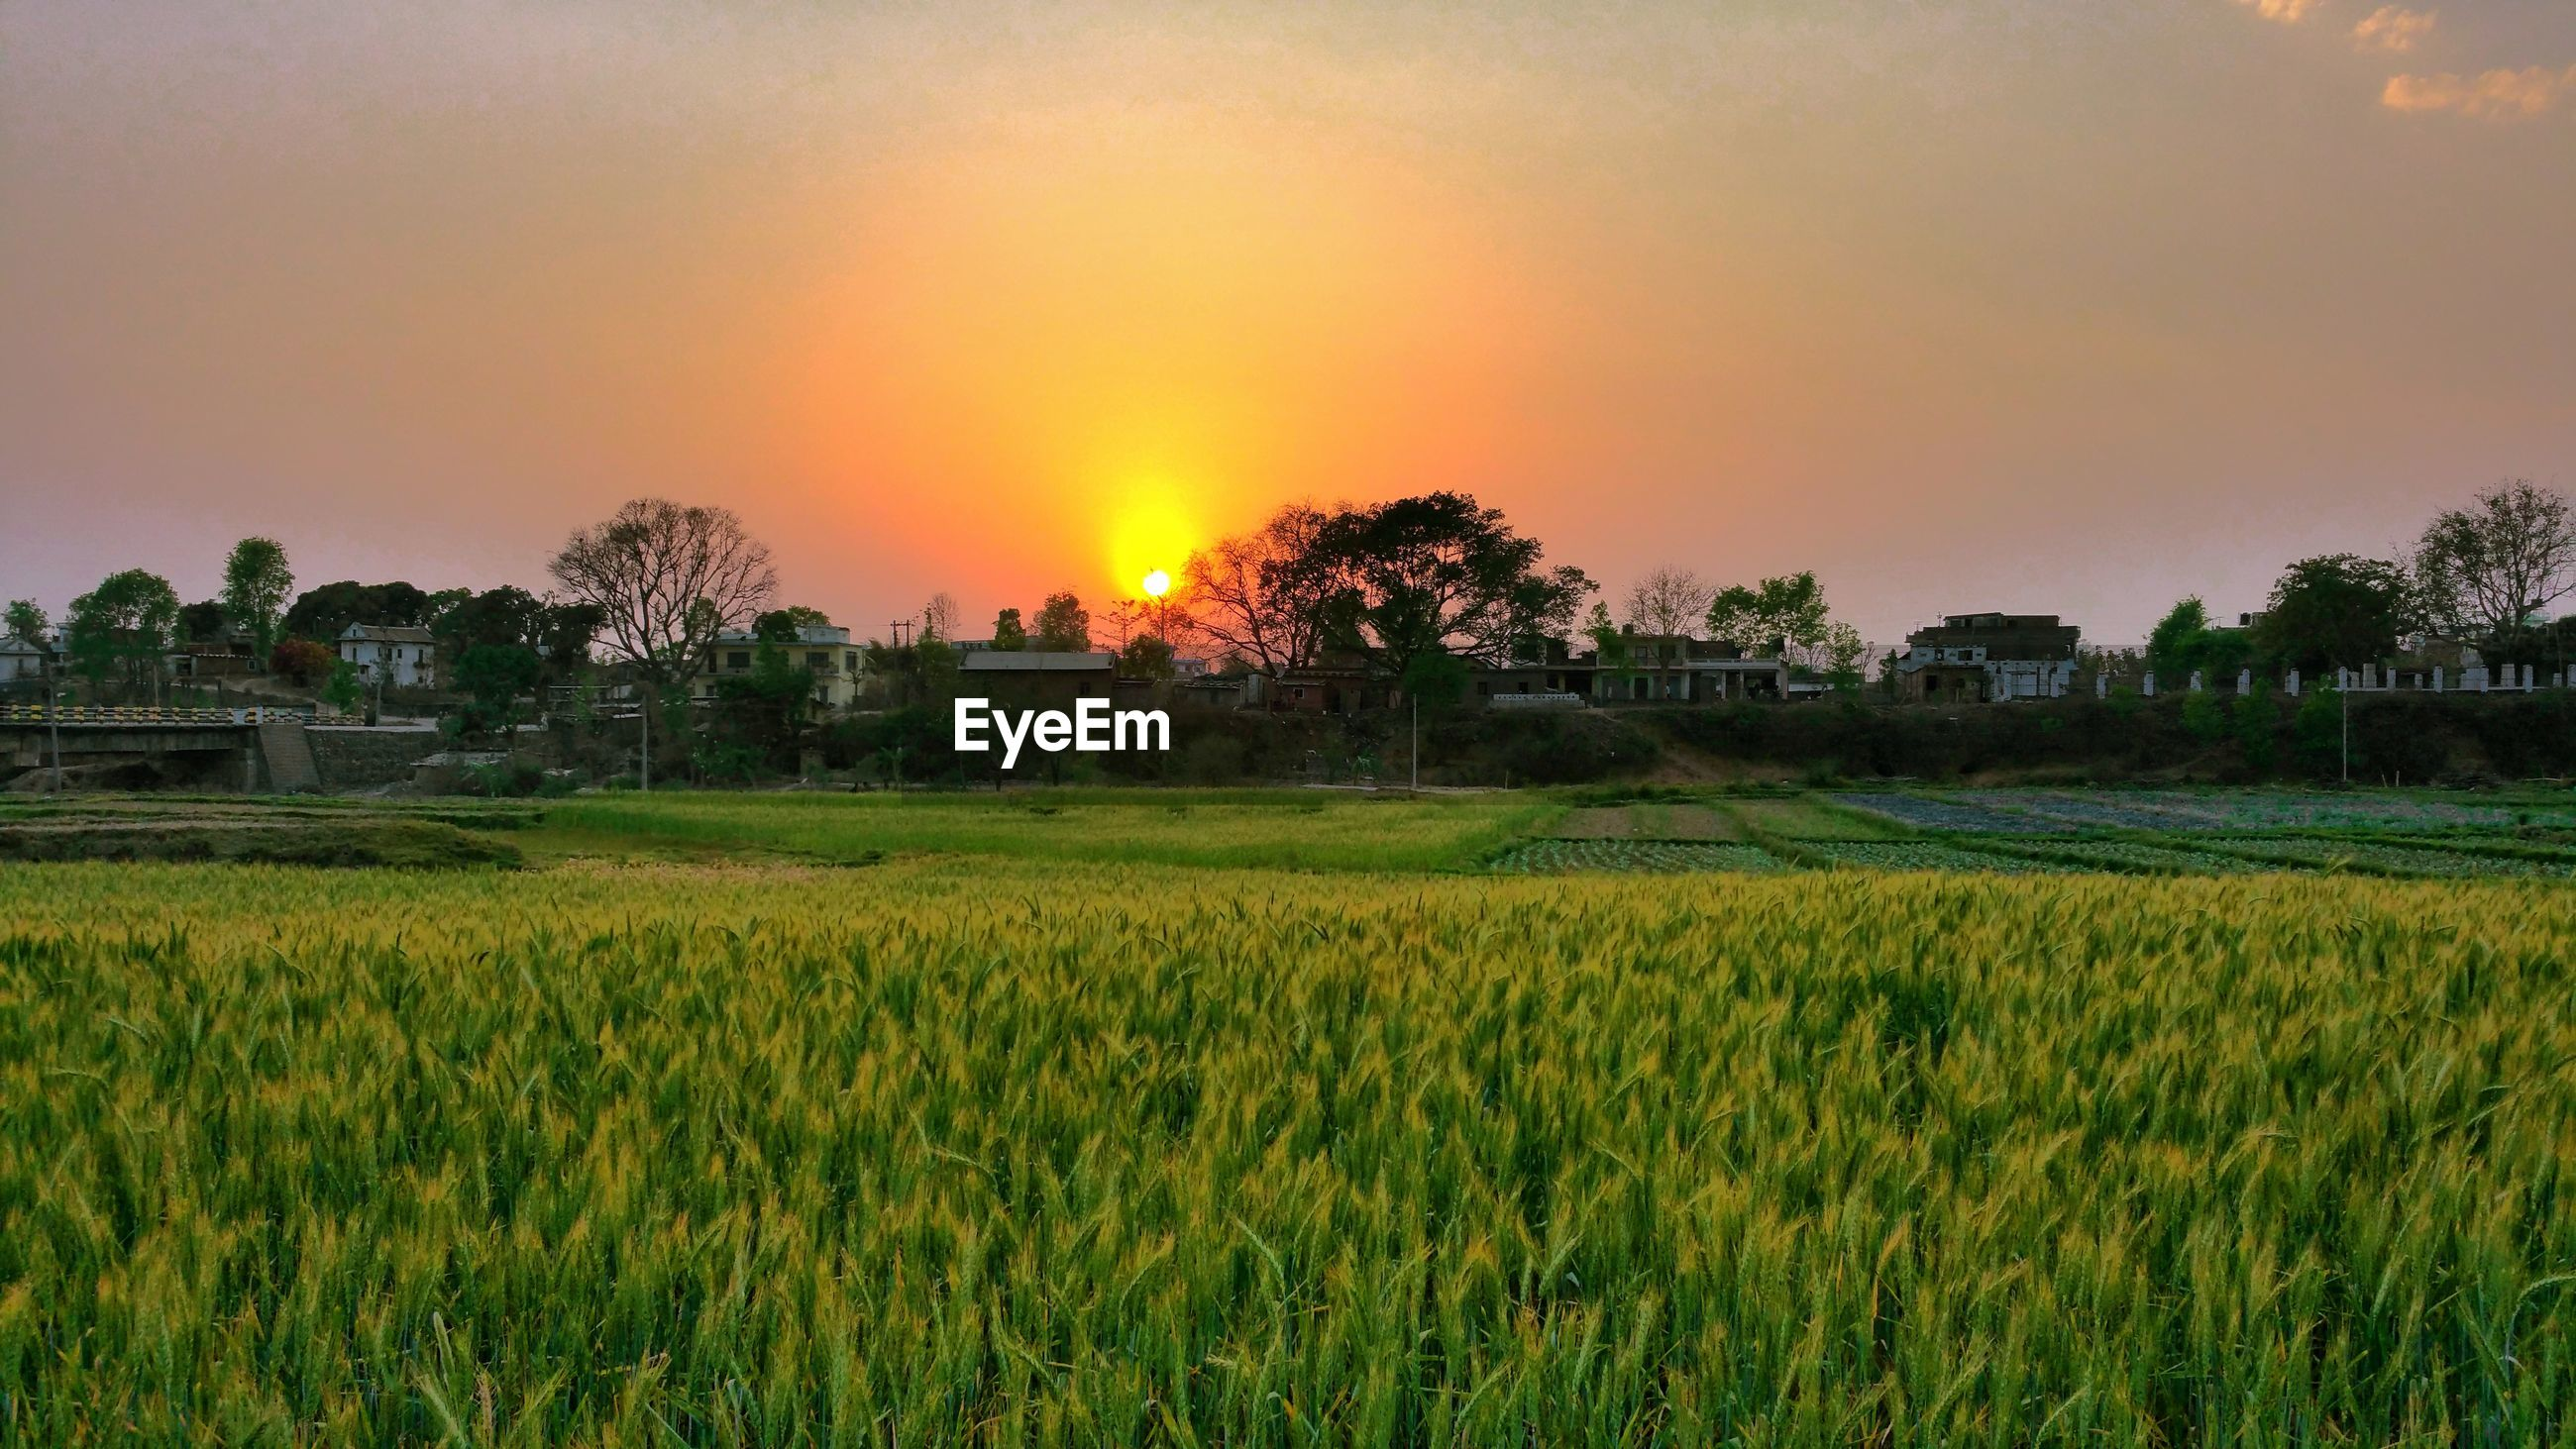 sunset, orange color, field, growth, tree, crop, nature, scenics, beauty in nature, rural scene, agriculture, rice paddy, outdoors, landscape, sky, green color, grass, sun, building exterior, architecture, no people, day